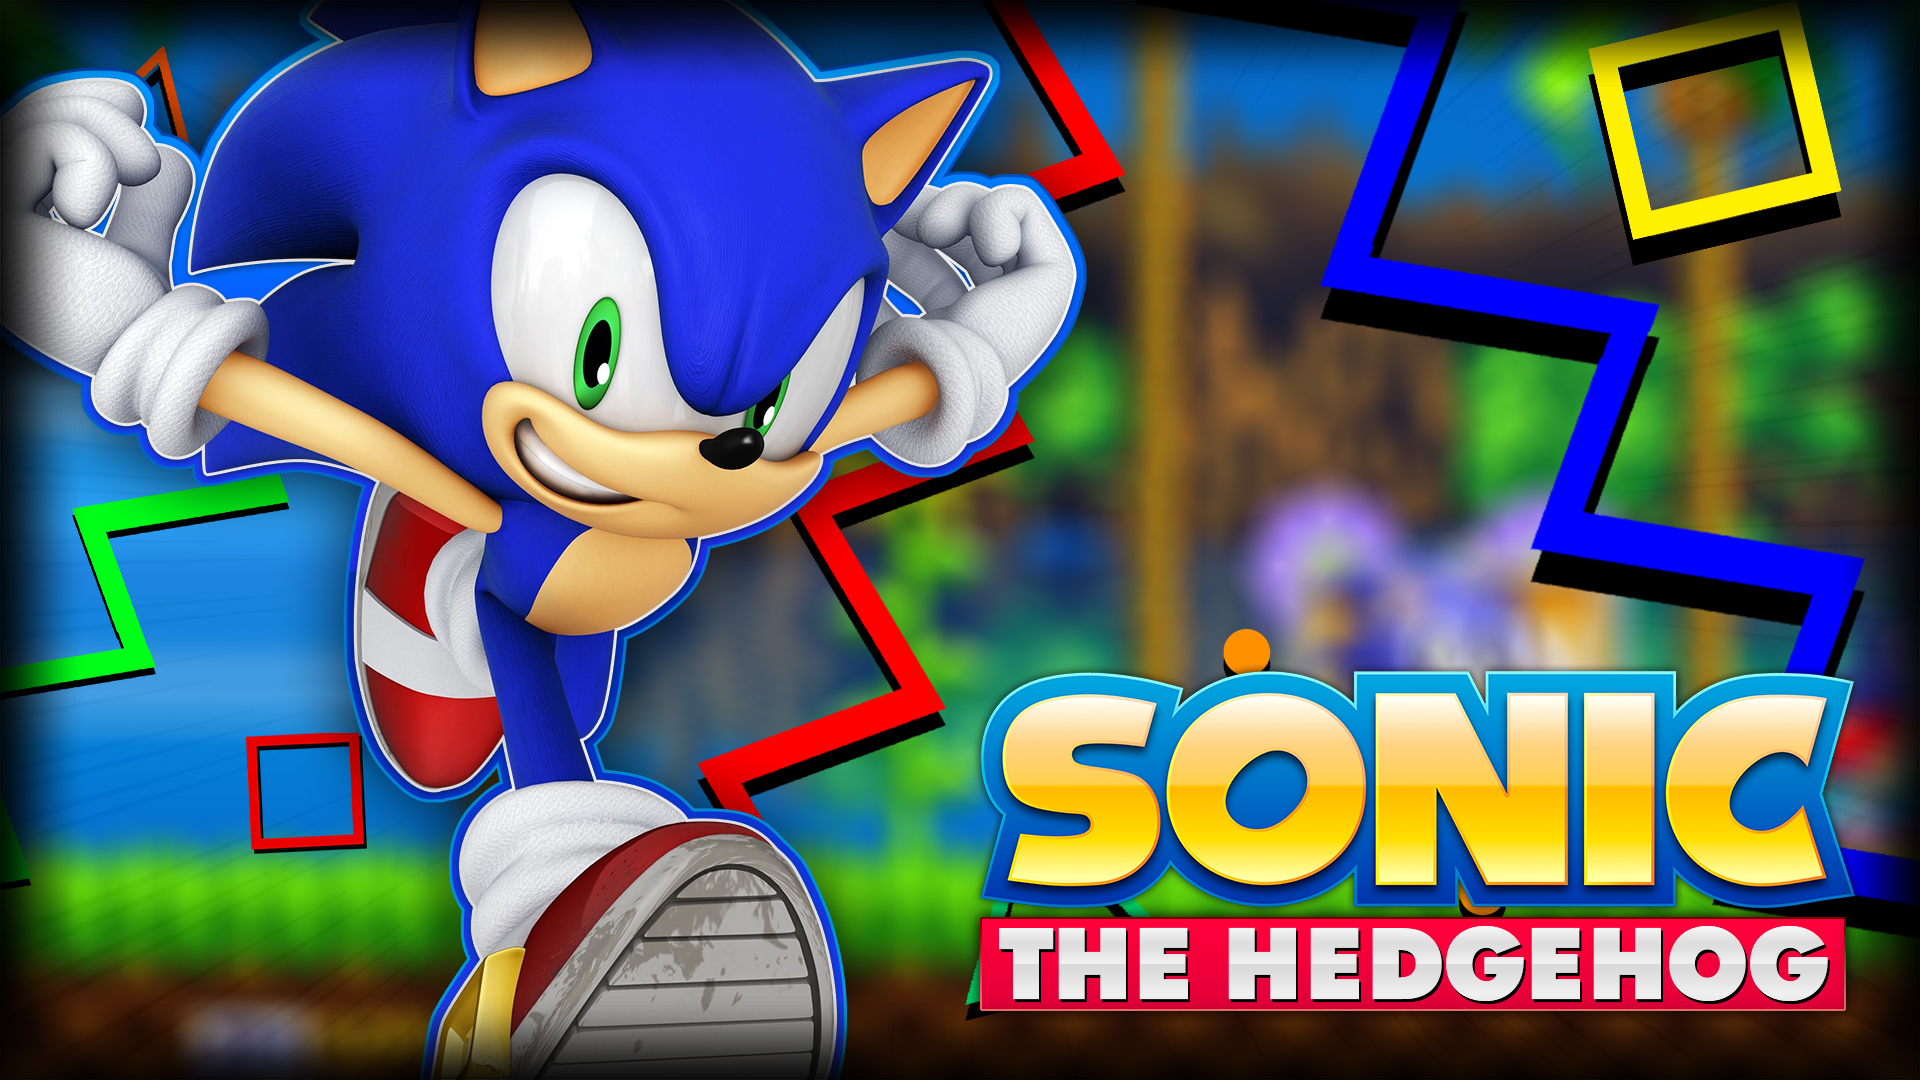 Free Download Sonic The Hedgehog Hd Wallpapers 1920x1080 For Your Desktop Mobile Tablet Explore 127 Sonic The Hedgehog Background Superman And Batman Wallpapers Carolina Gamecock Wallpaper Jerry Rice Wallpaper